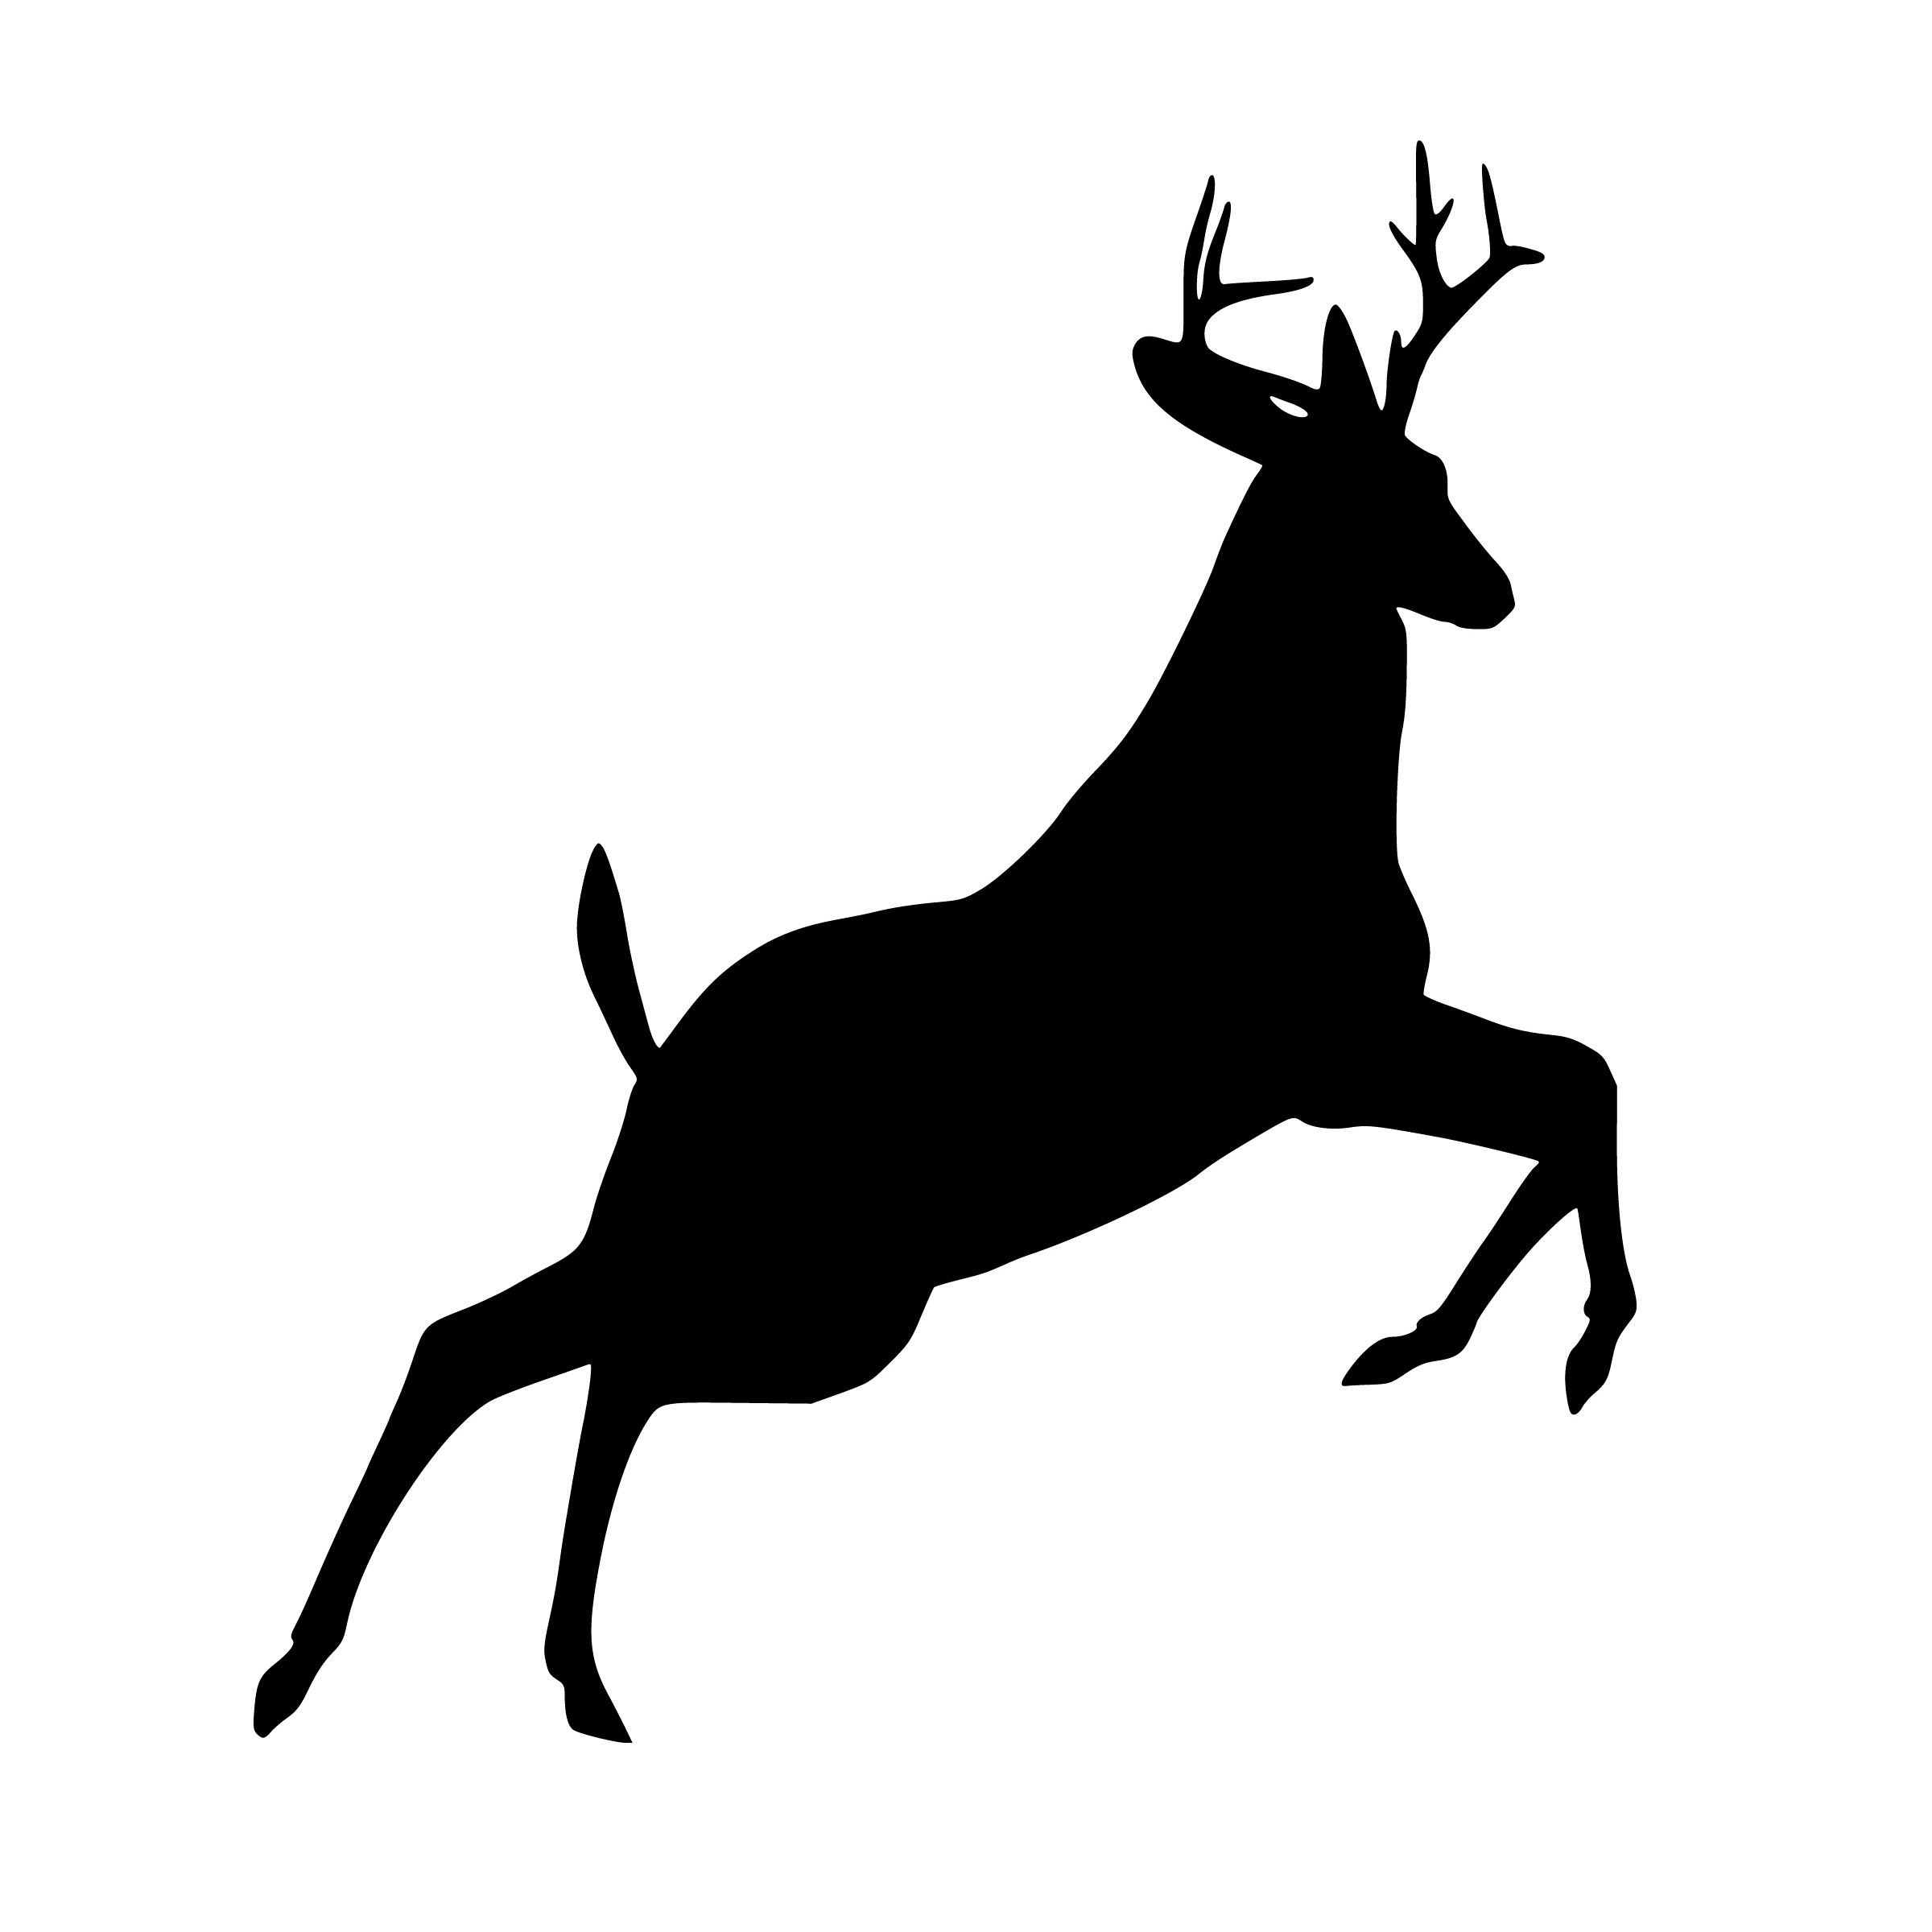 Antlered deer jumping clipart free jpg black and white Free Images : deer, jumping, silhouette, leaping, wildlife, reindeer ... jpg black and white